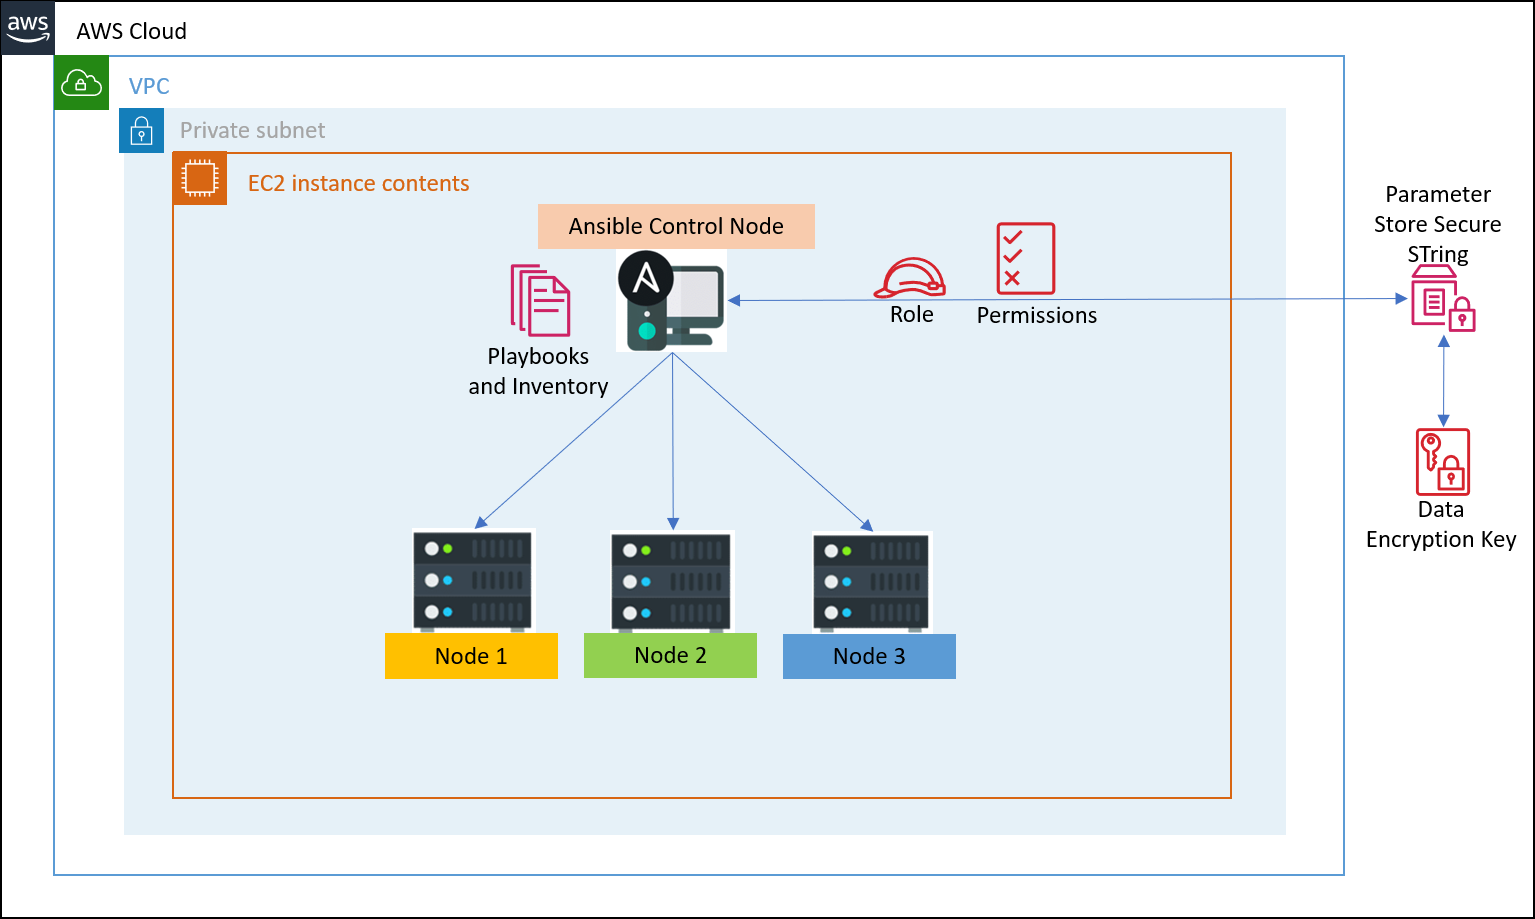 /connect-to-ec2-remote-systems-from-the-ansible-control-machine-using-aws-ssm-parameter-store-jt2k342k feature image